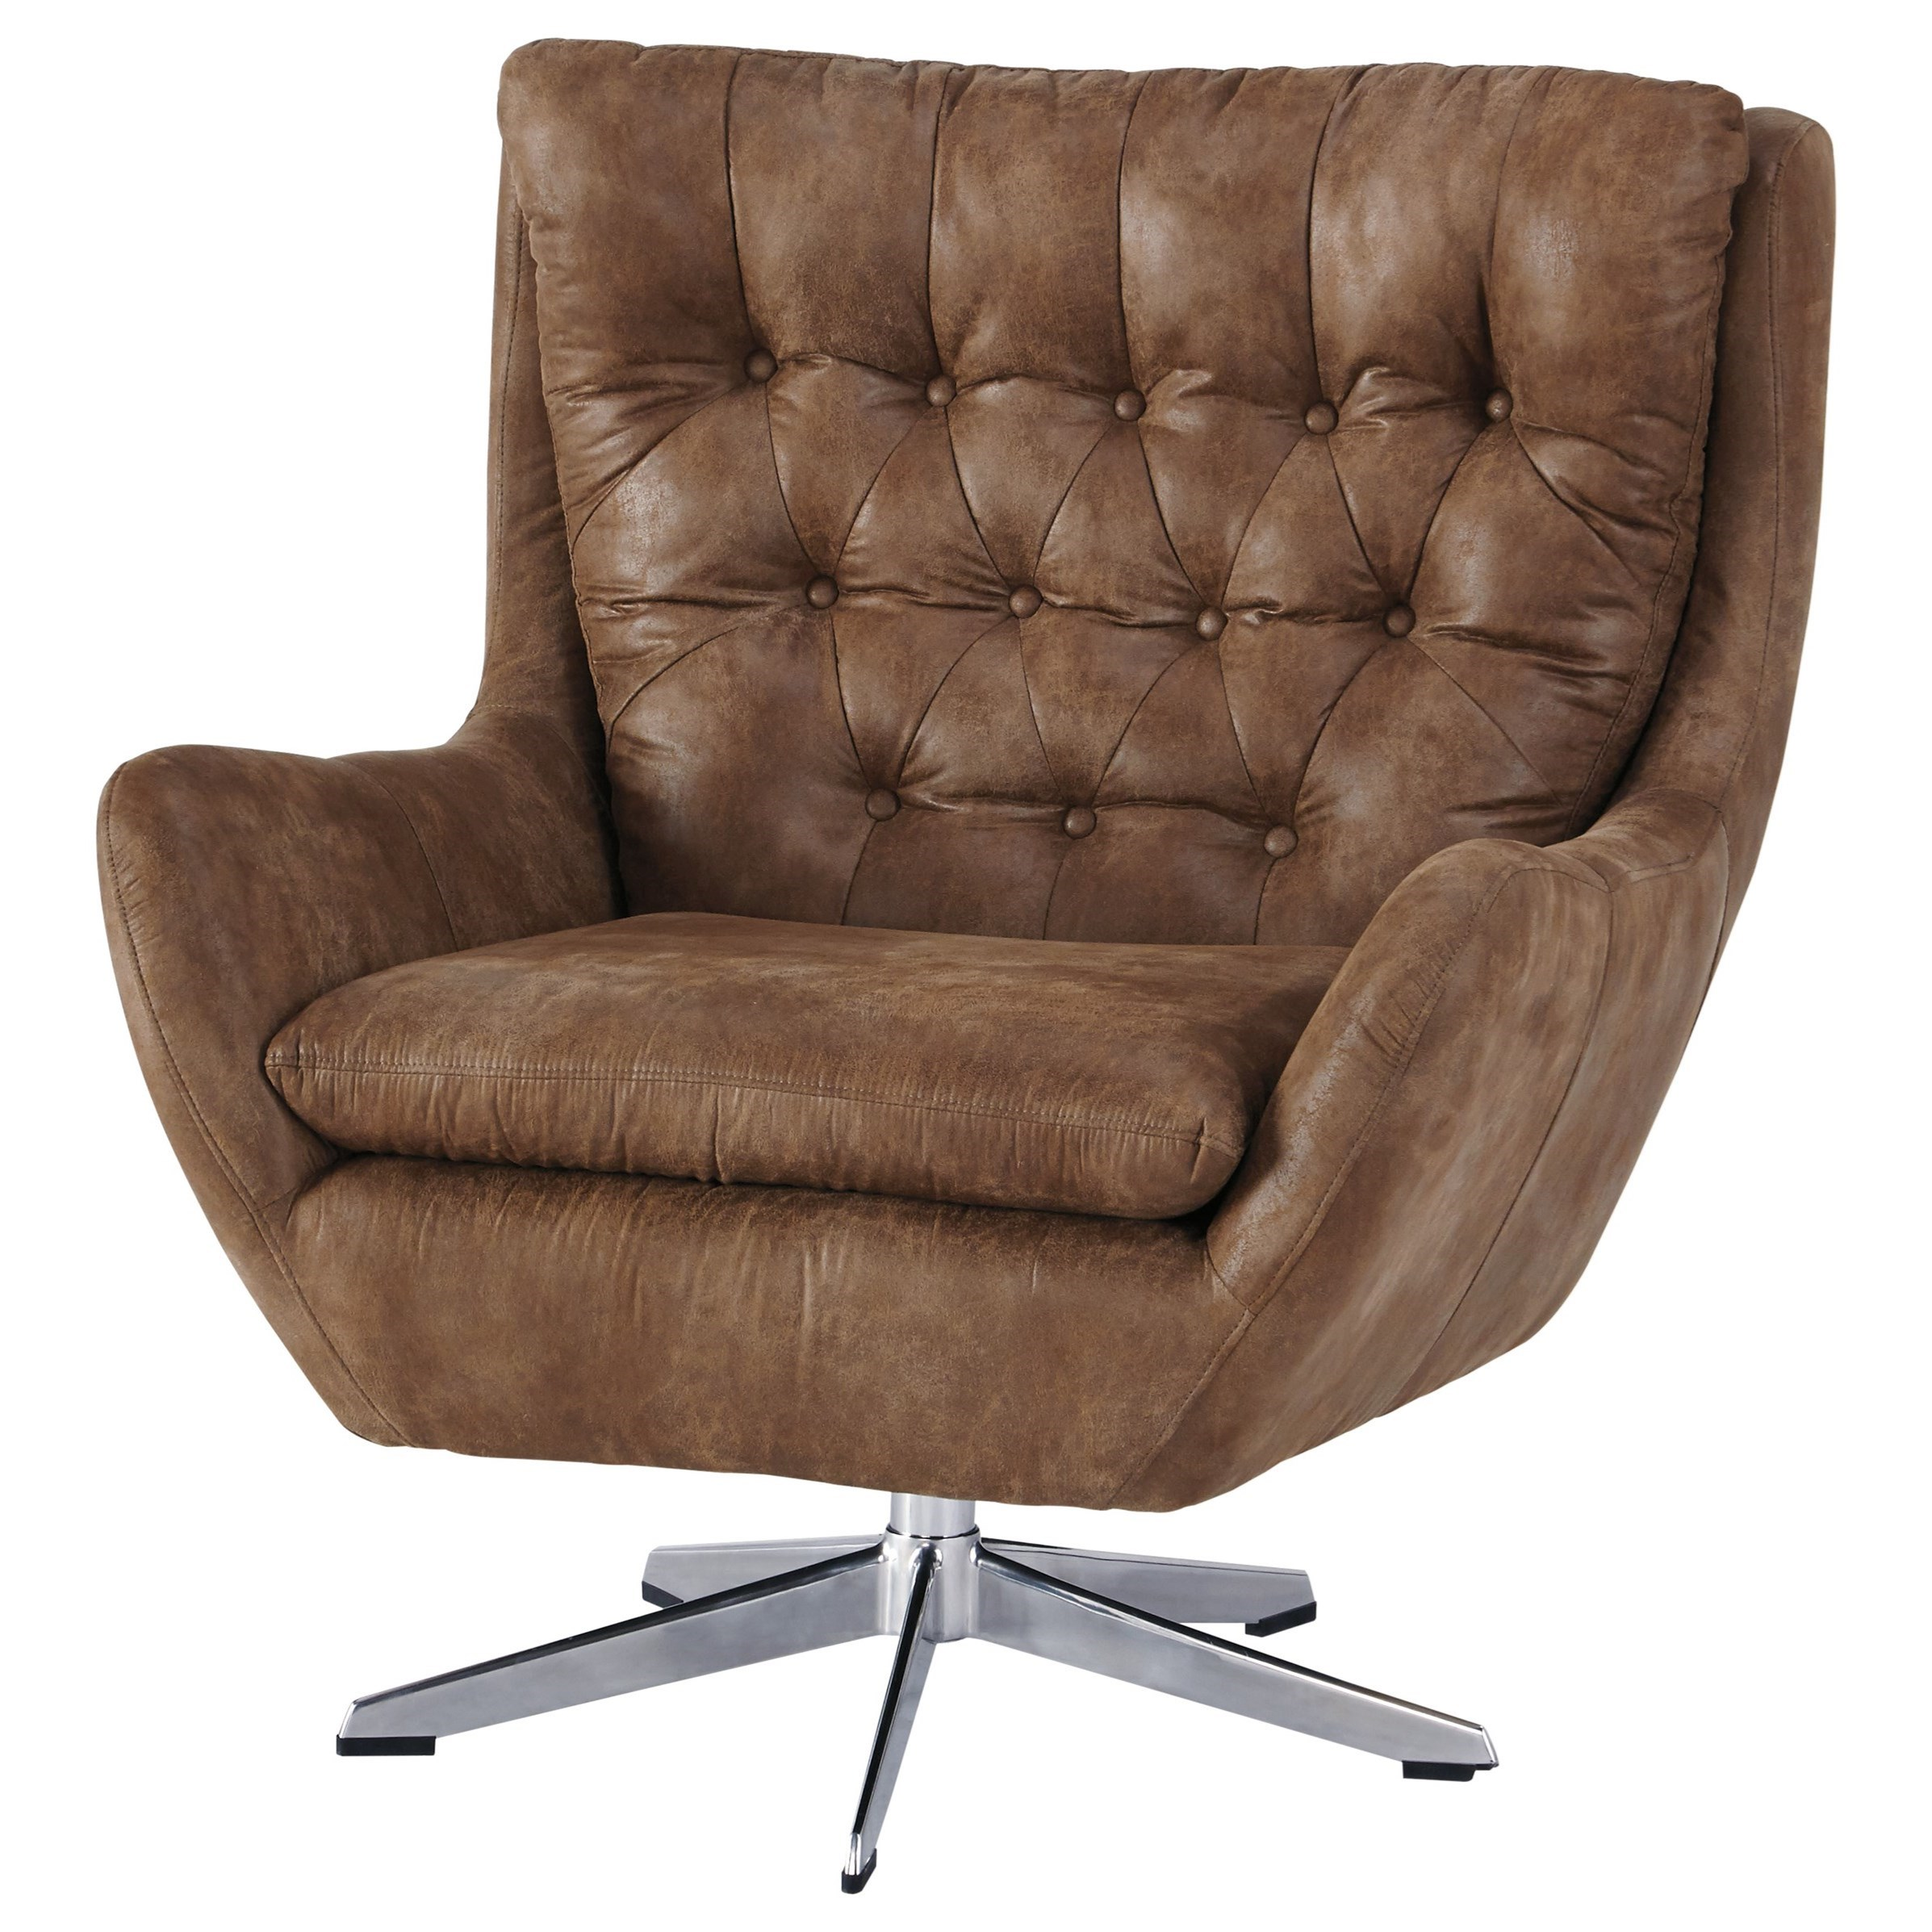 Velburg Swivel Base Accent Chair by Signature at Walker's Furniture